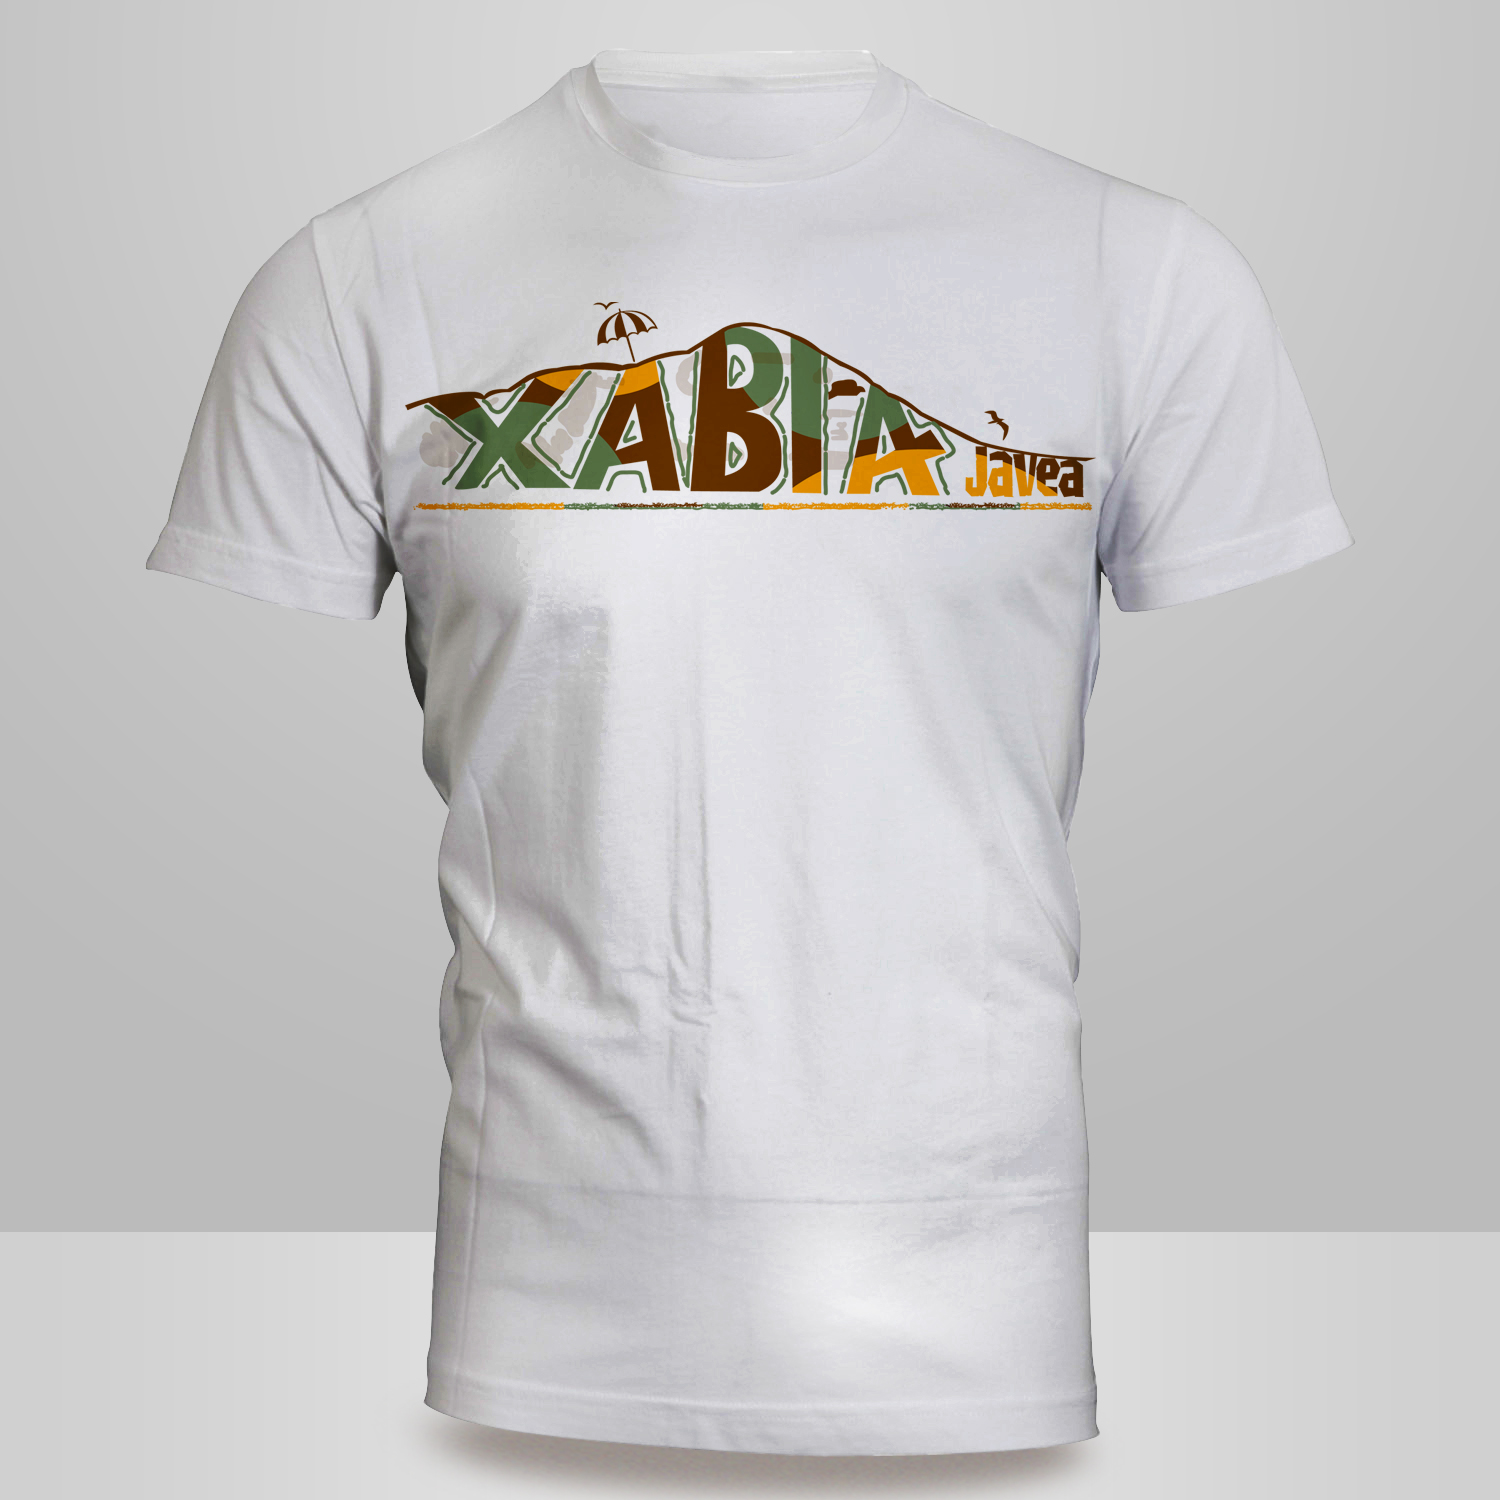 Modern Upmarket T Shirt Design For A Company By Kero